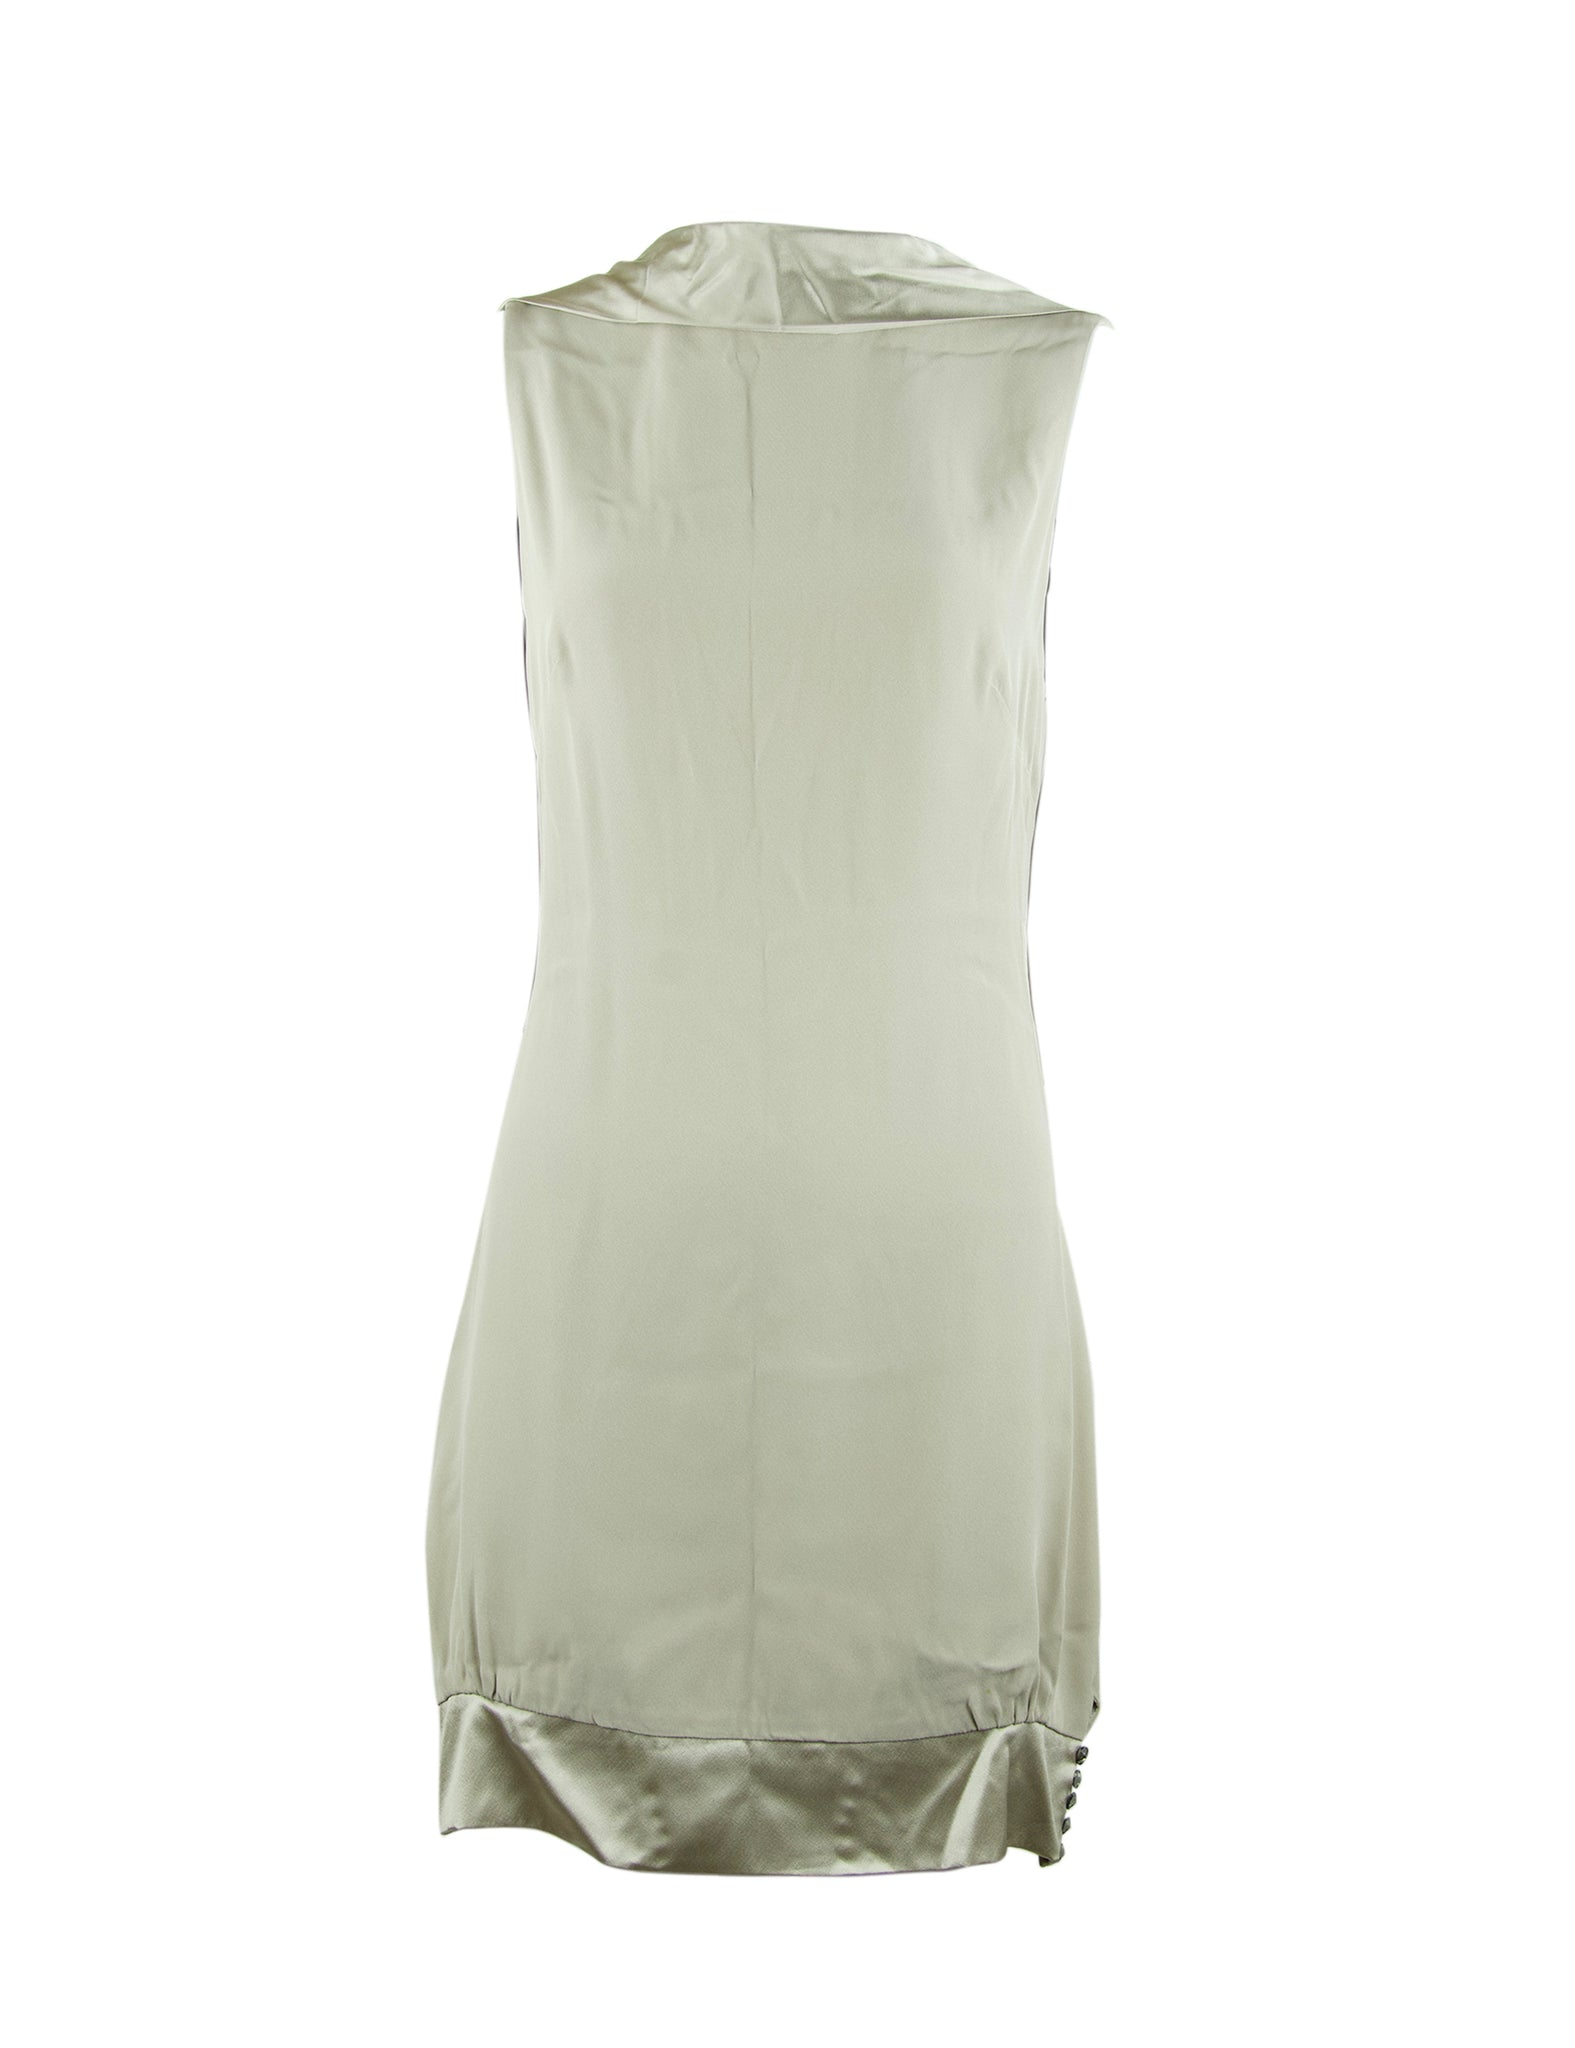 Azzaro Gray Silk Open Back Dress - Size S